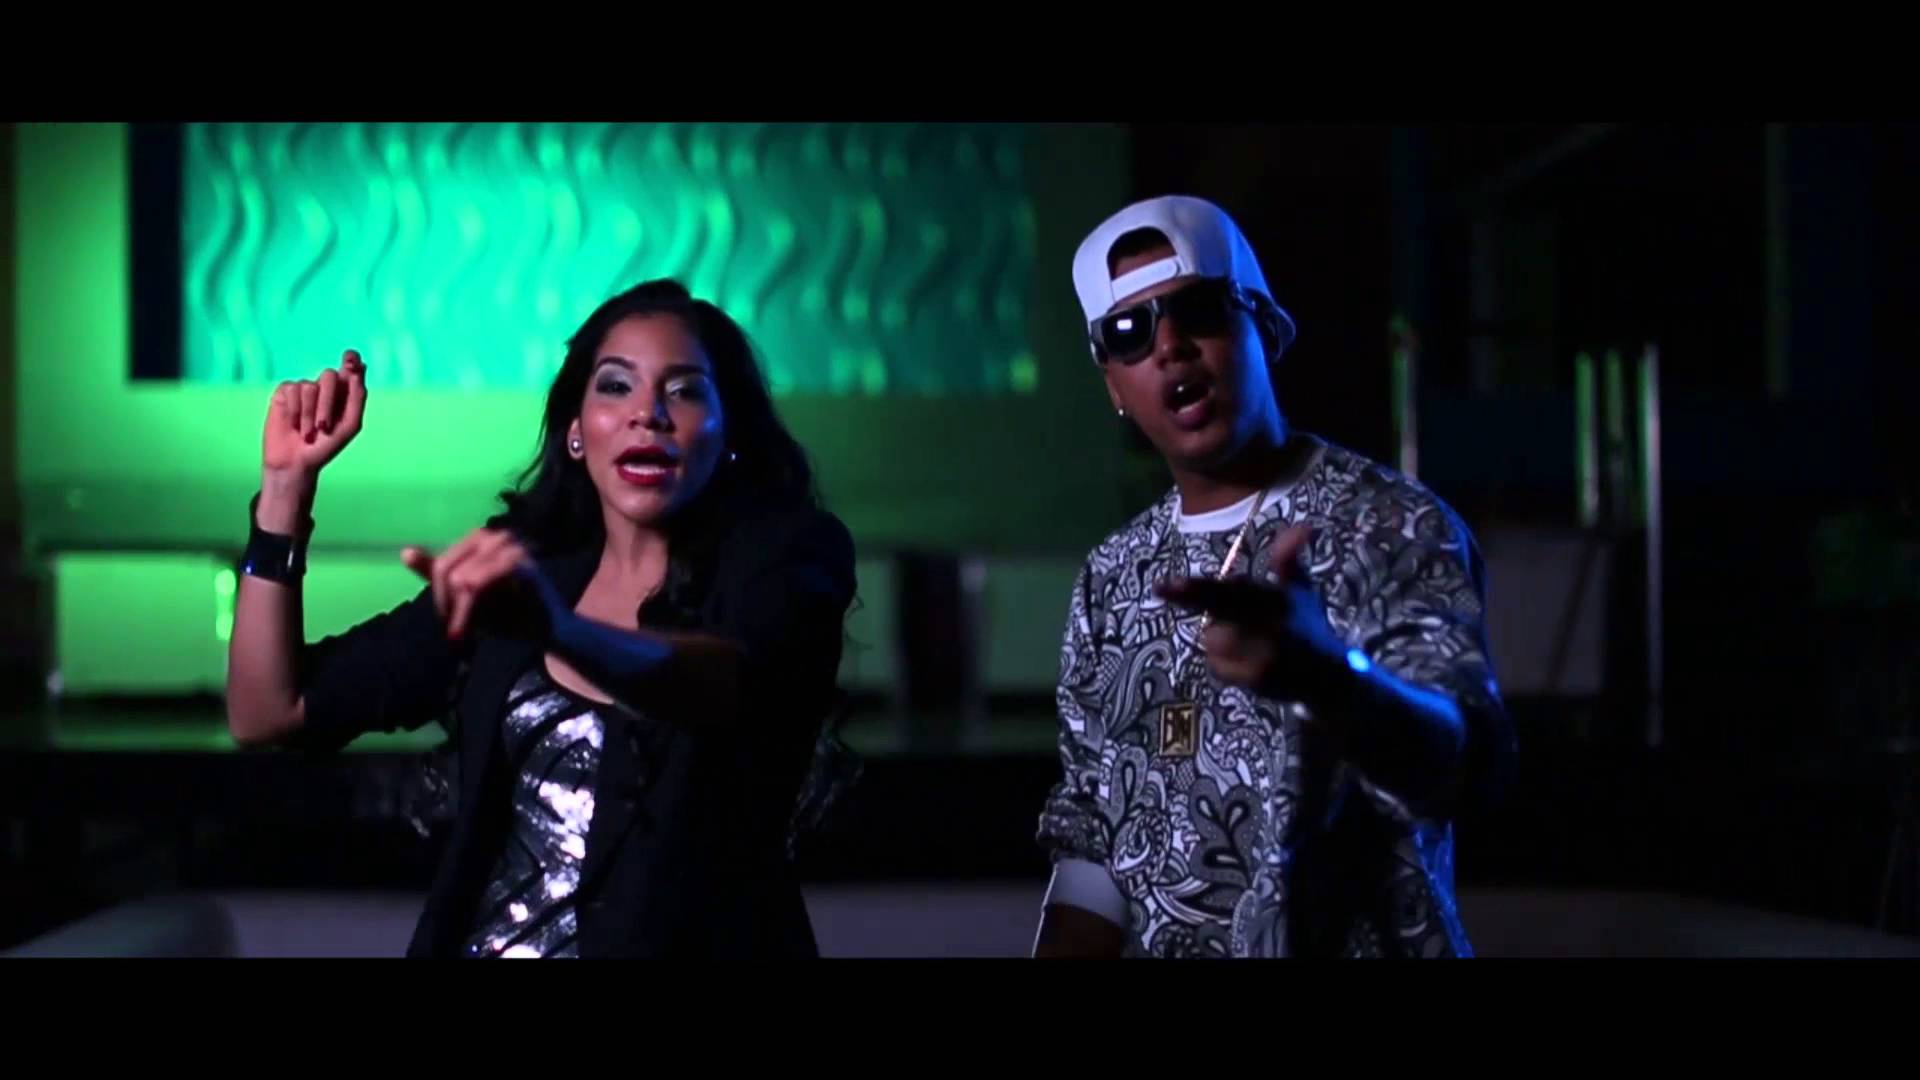 Heidy Brown ft Bulova - La Pelicula (Video Official)